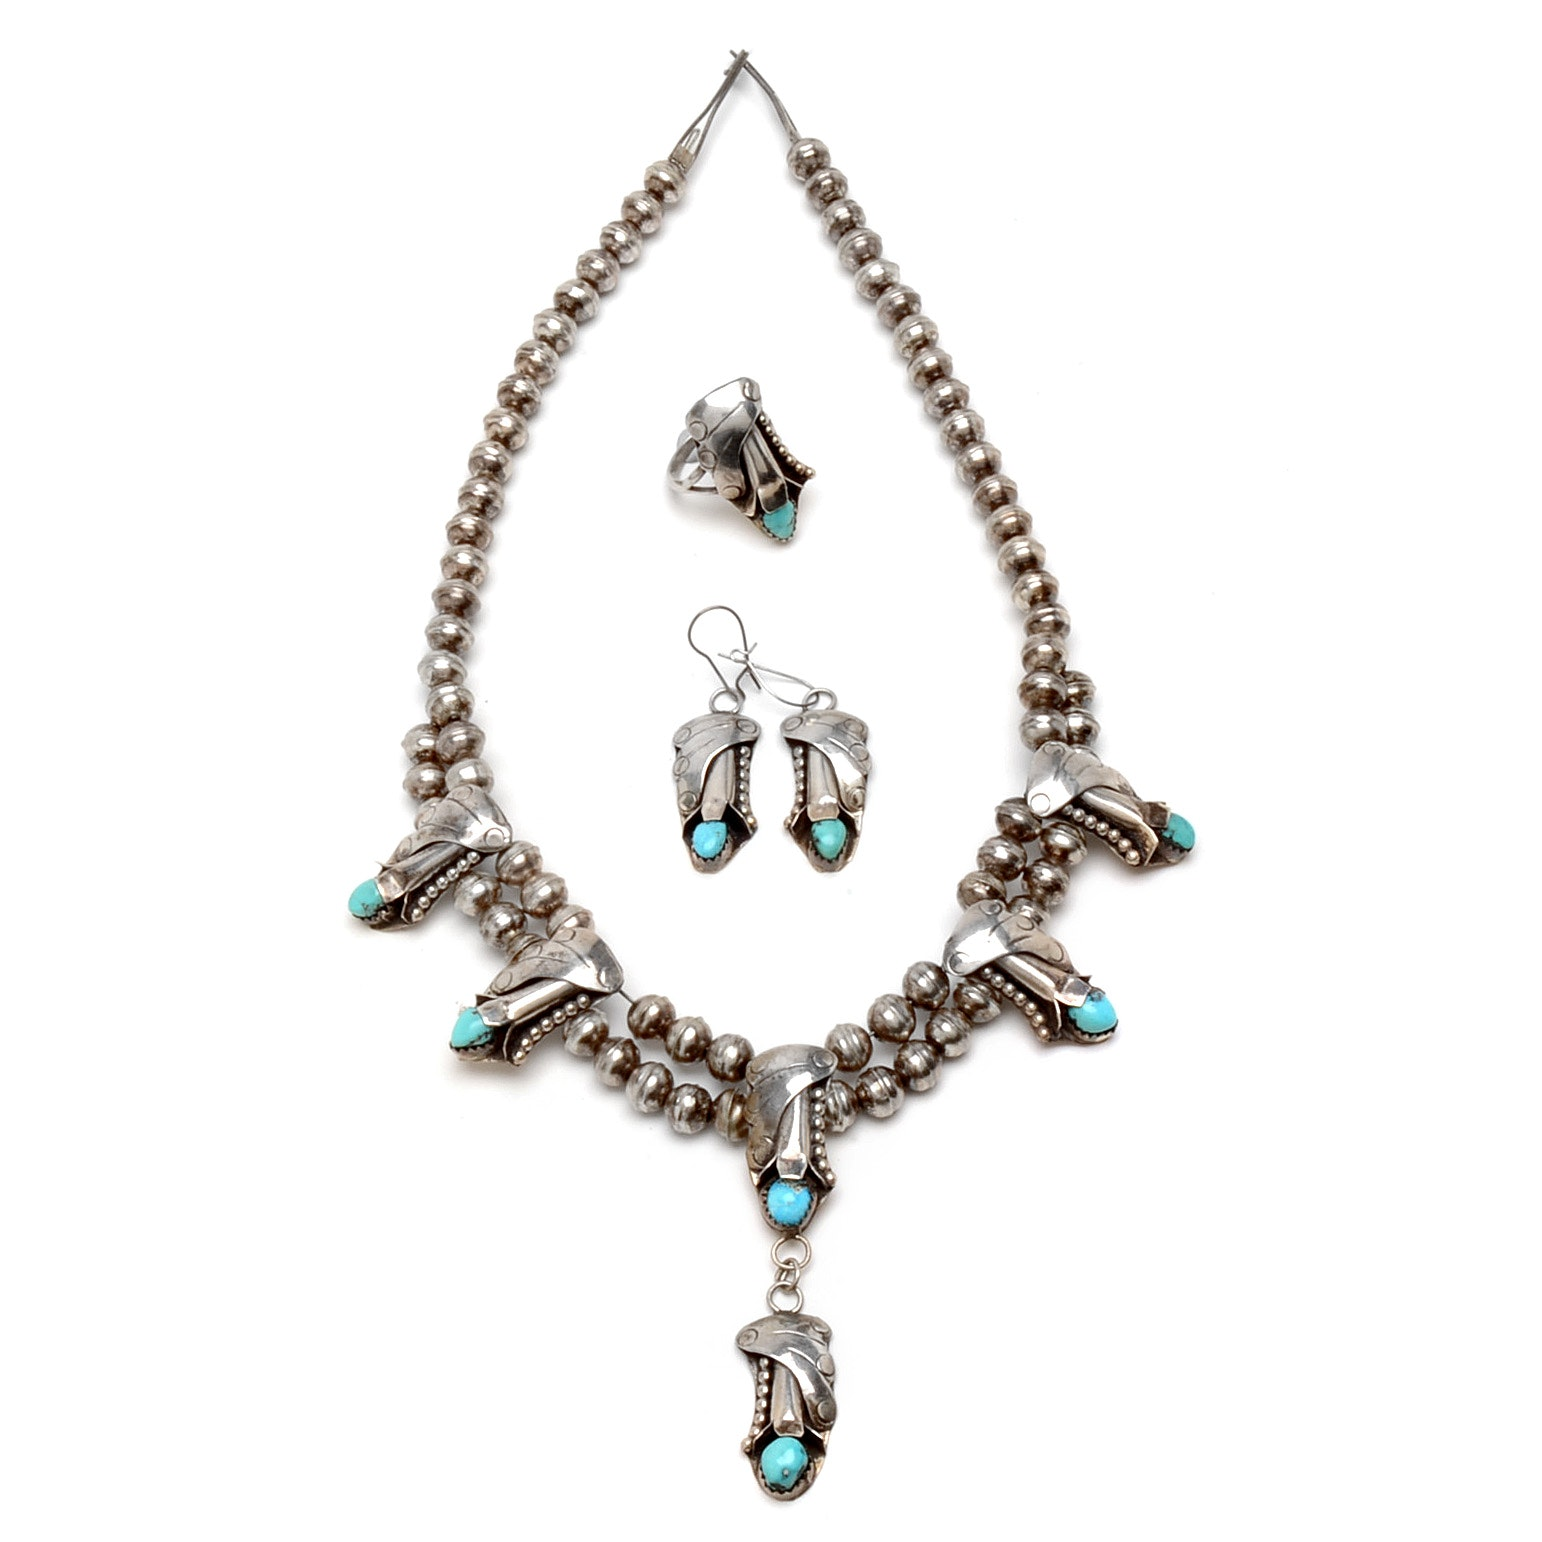 Benchmade Silver and Turquoise Necklace, Earrings and Ring Suite